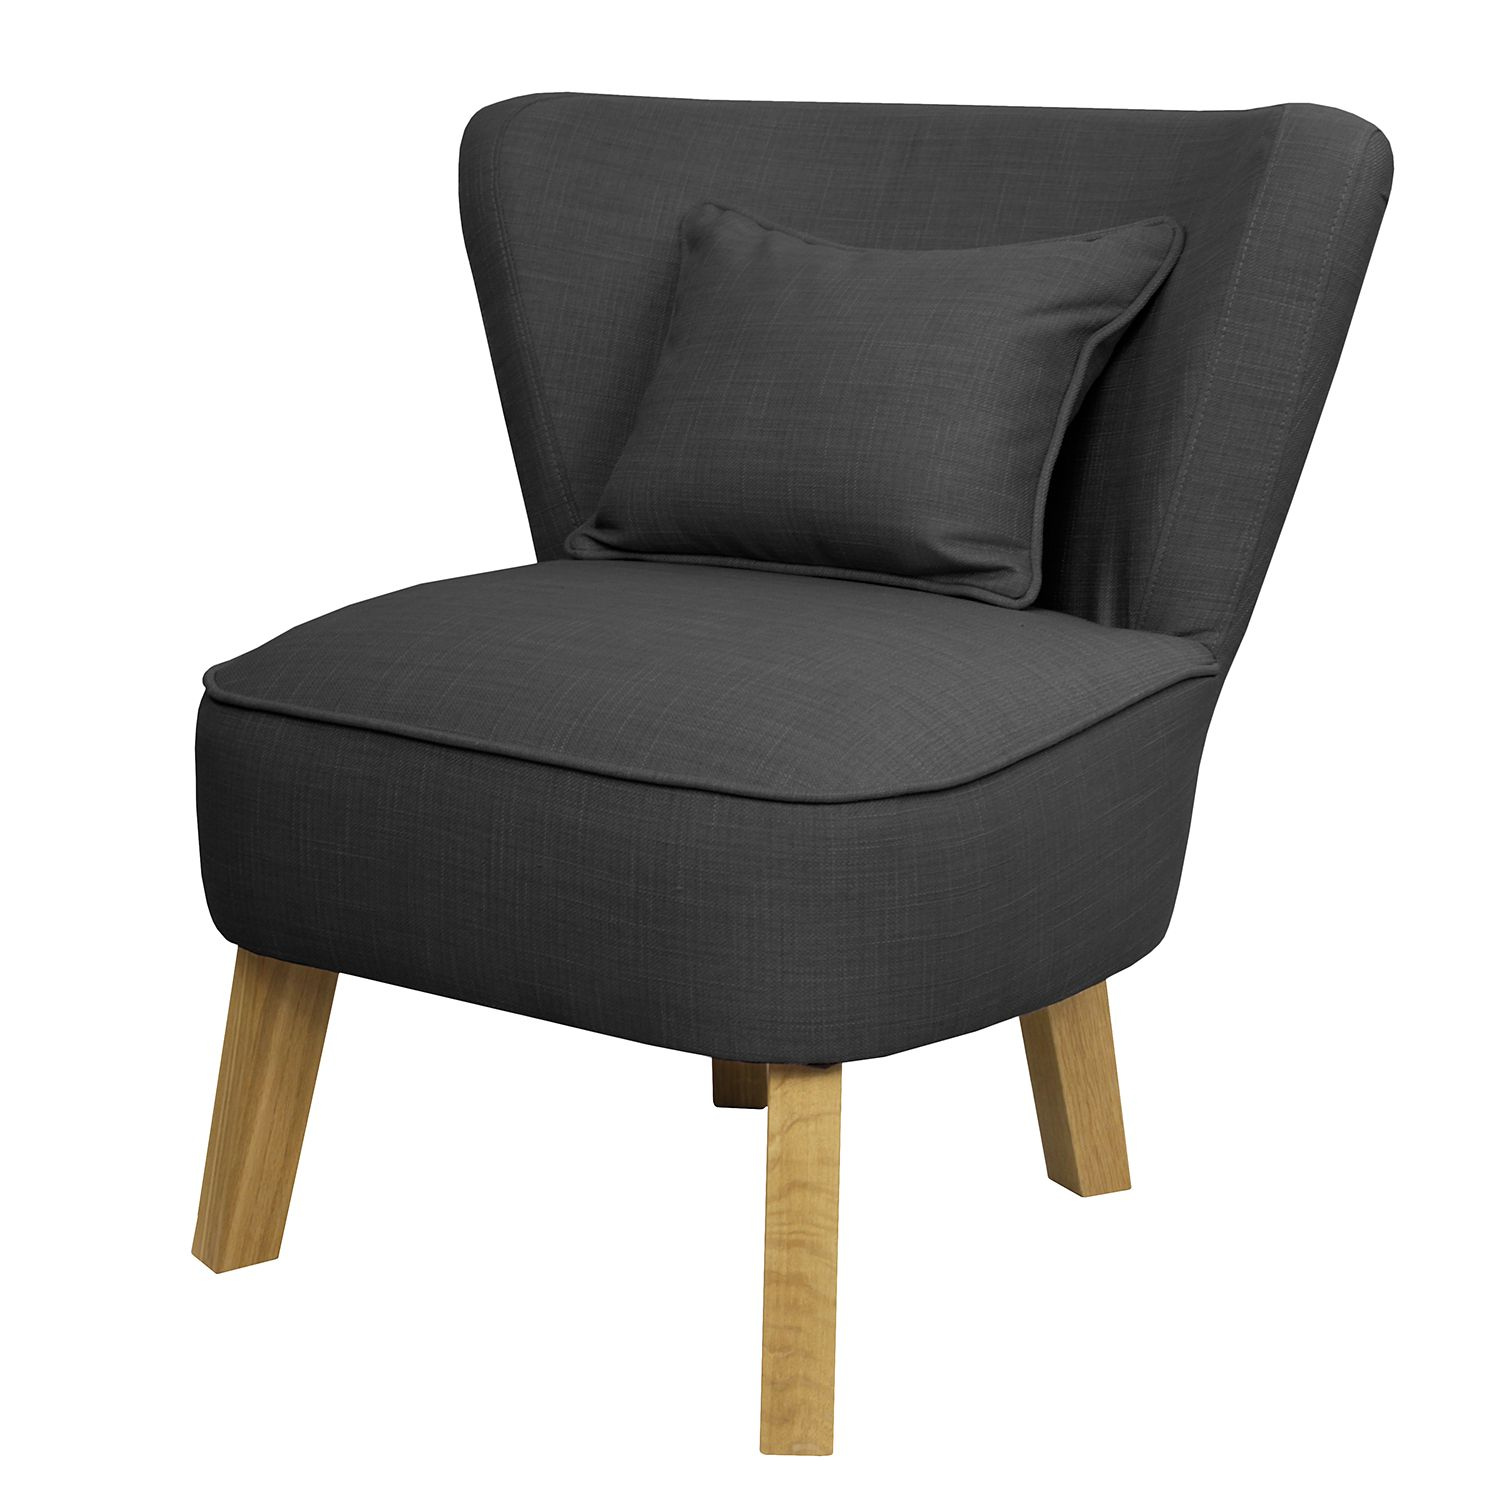 Fauteuil Freya I - Tissu Mauve - Anthracite, Morteens